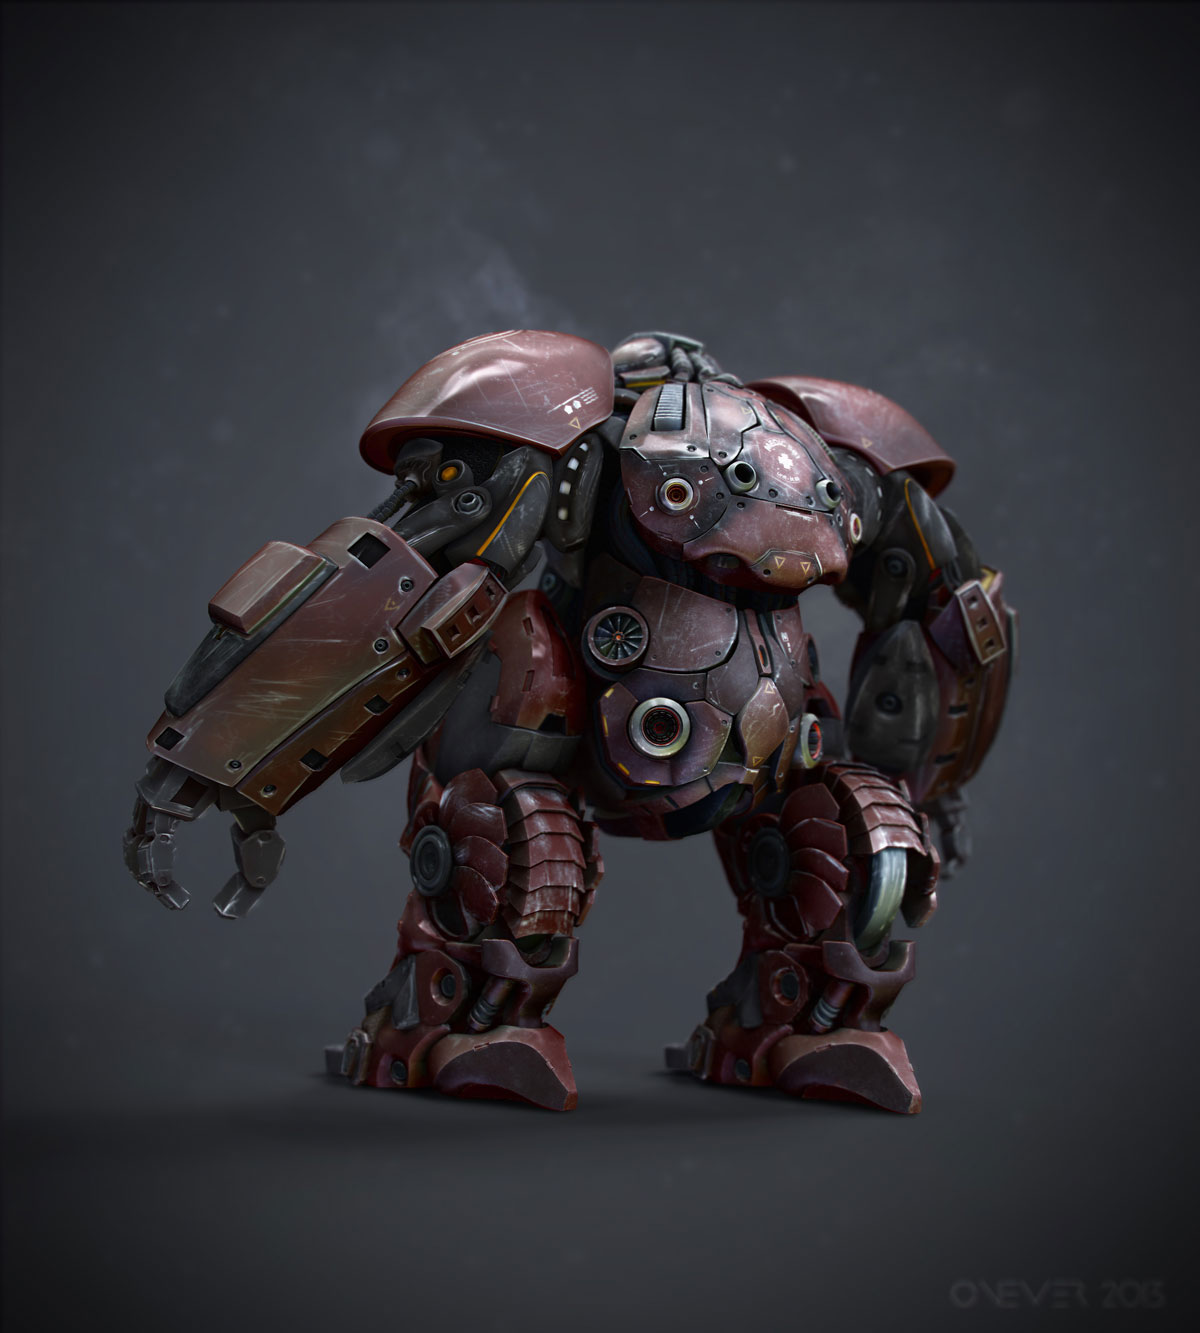 Medical mech design rendered from behind